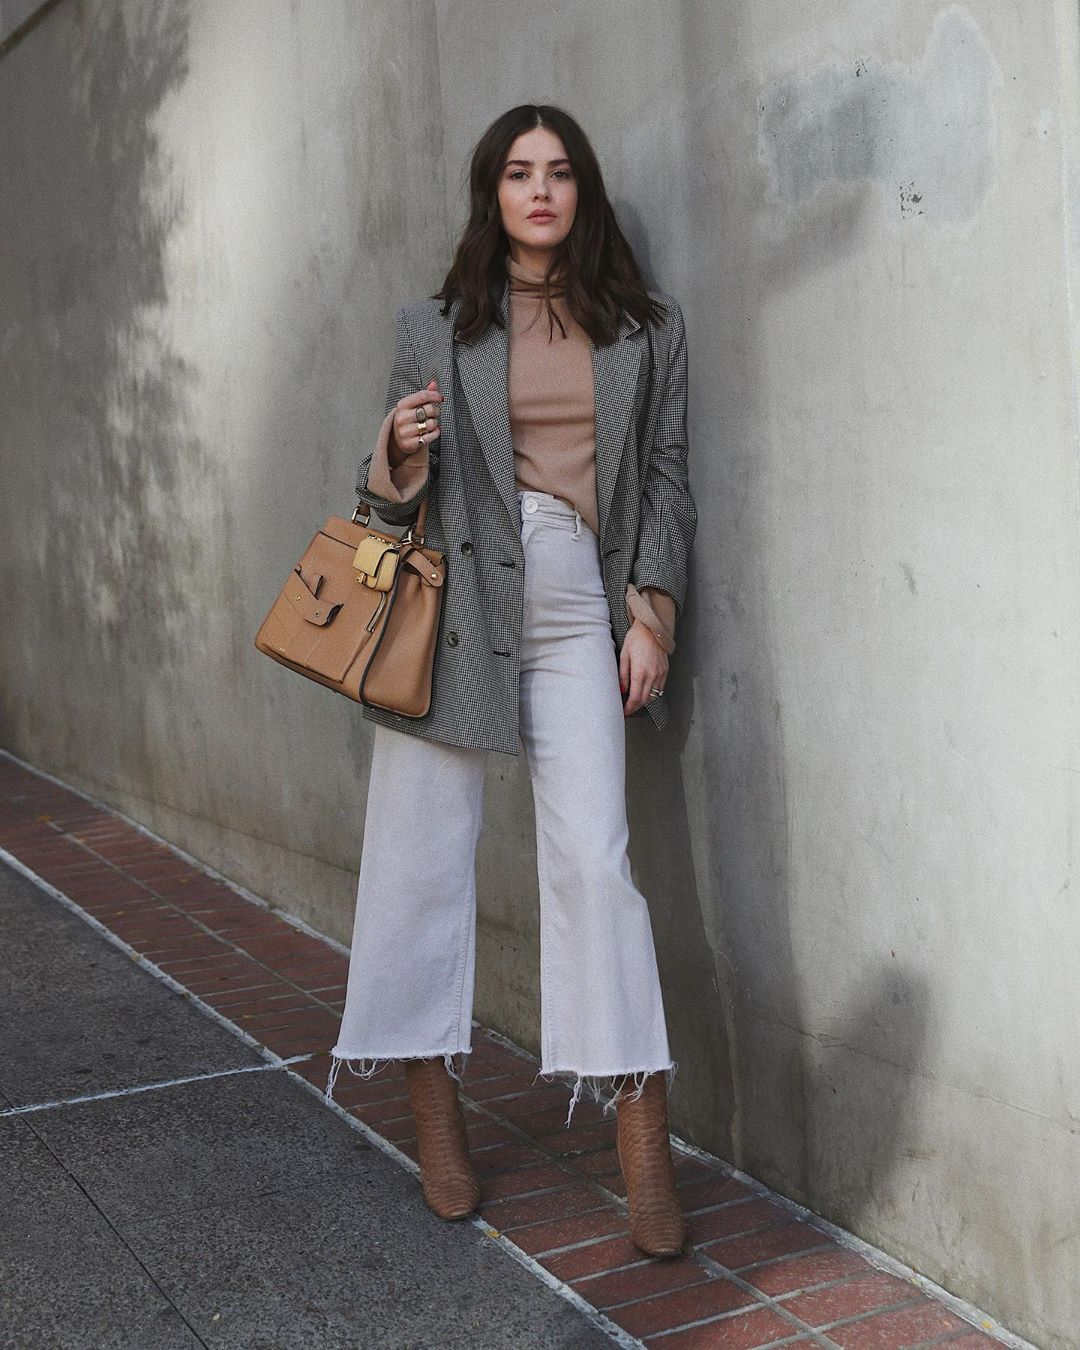 paola-alberdi-white-jeans-winter-outfit